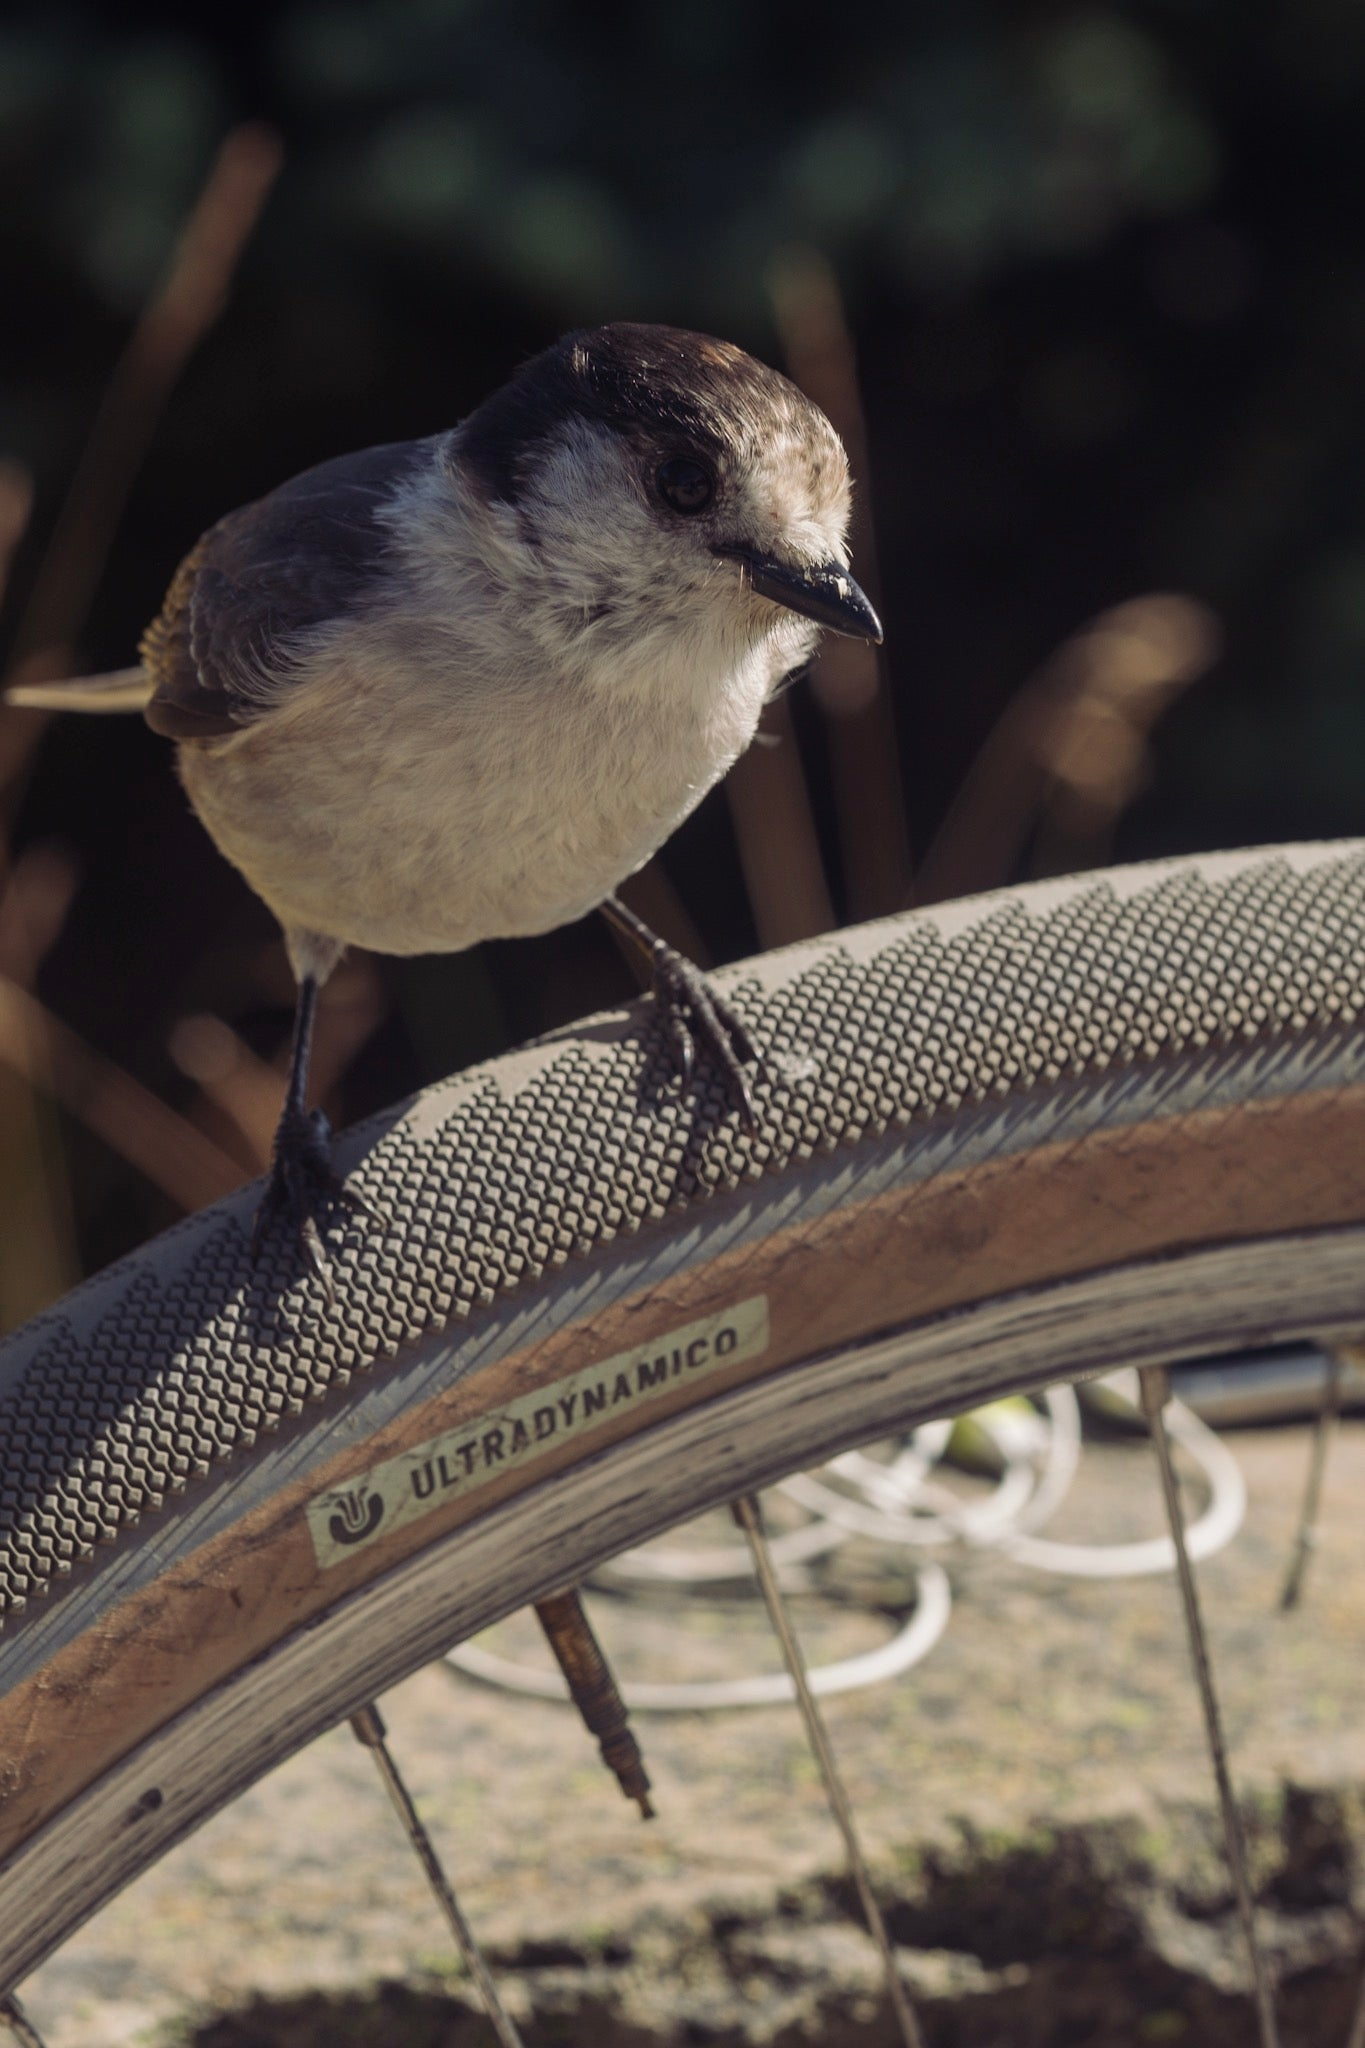 Birding is the new golf.  Bikes is no longer the new golf. - UDCO.